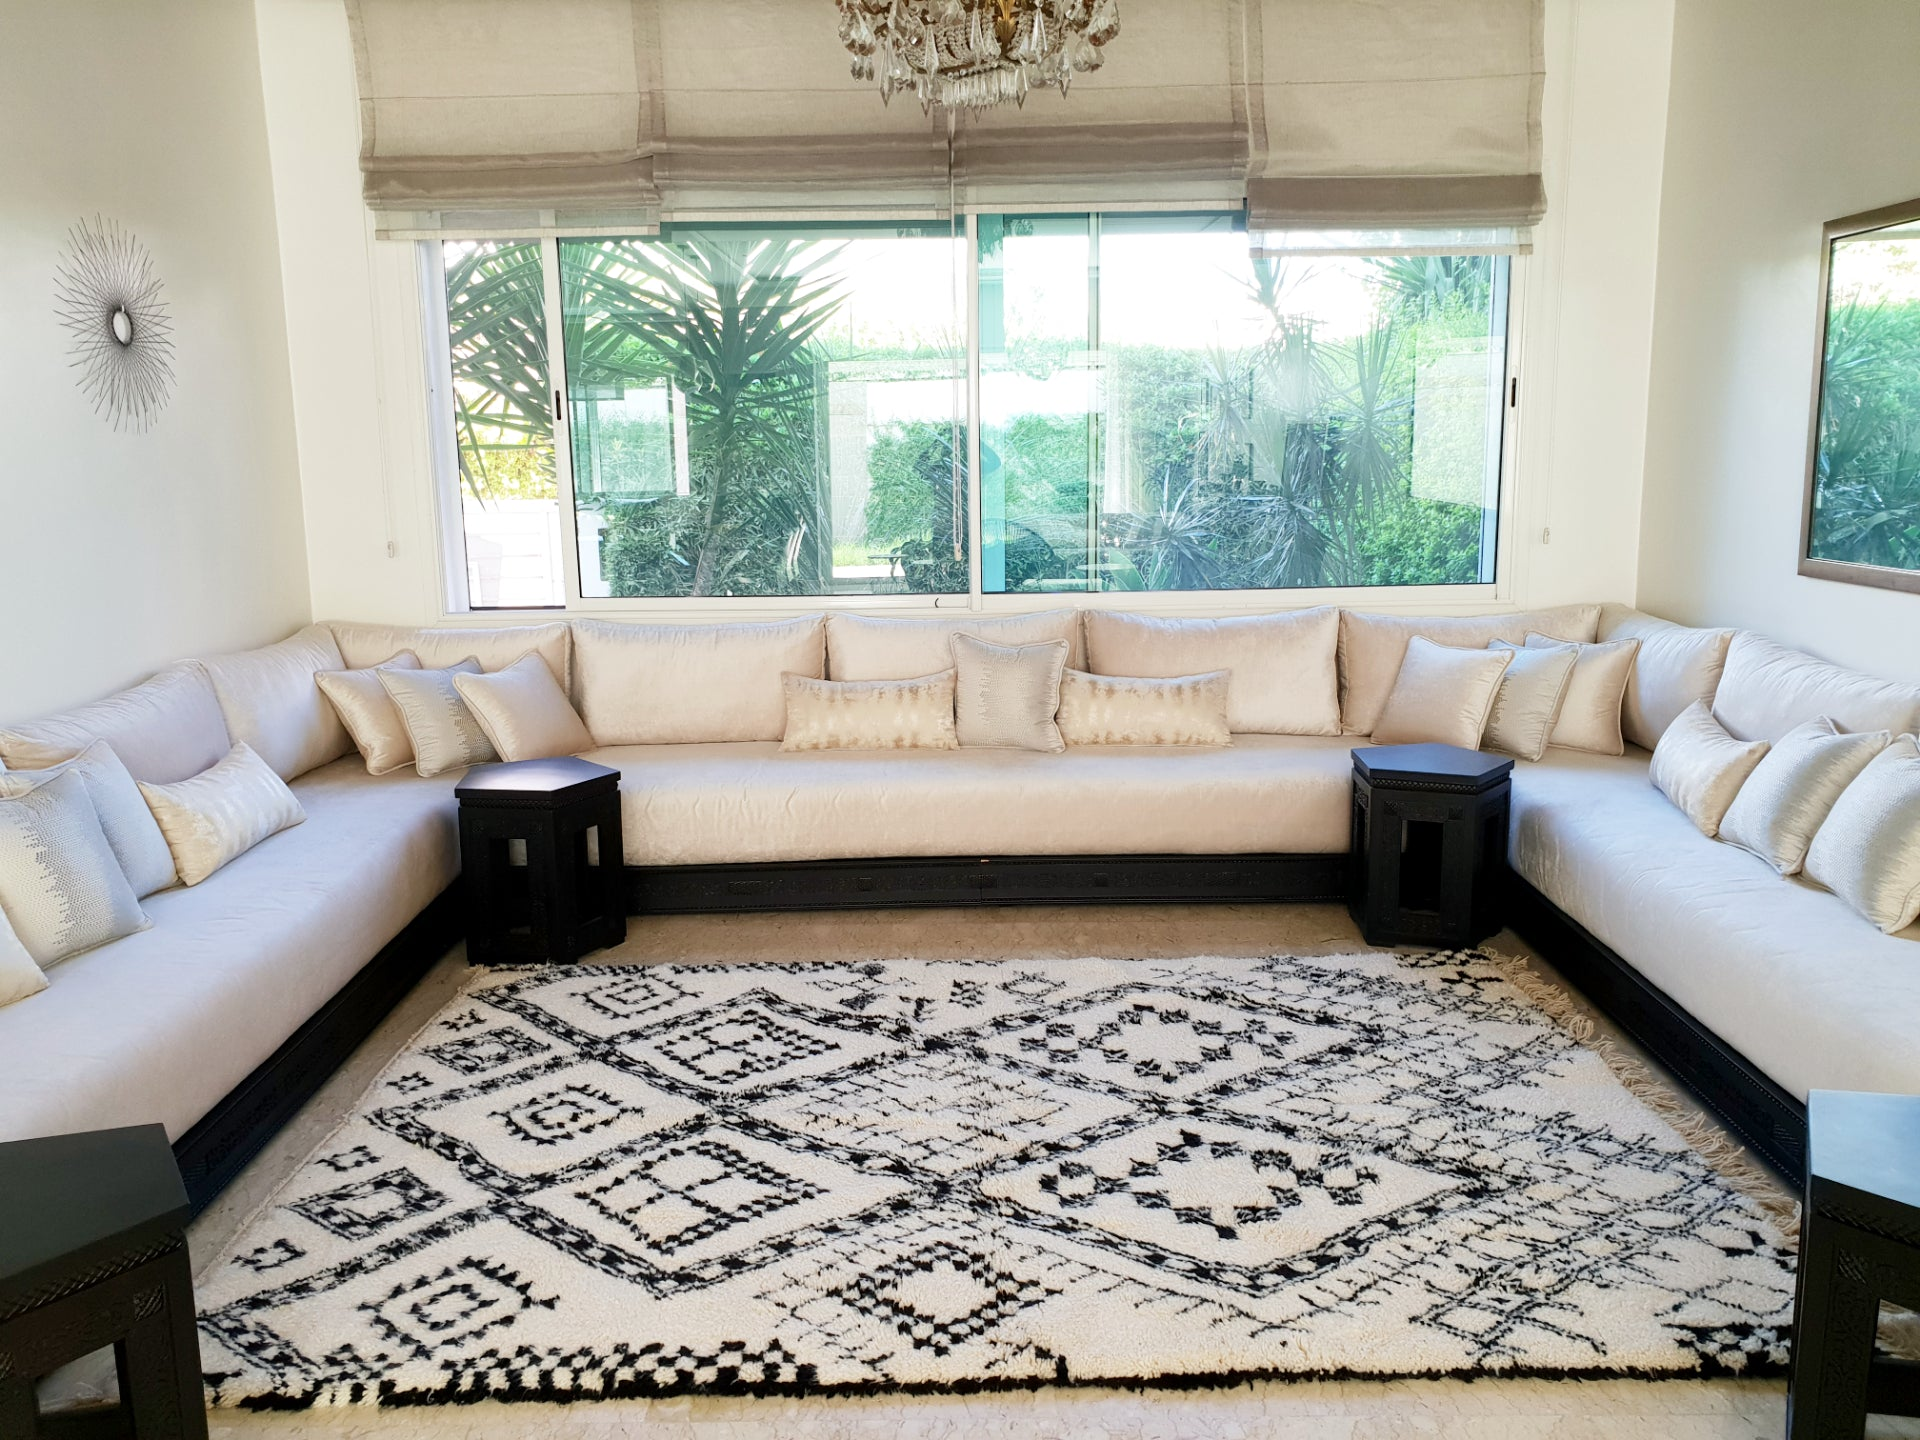 Moroccan rugs Switzerland